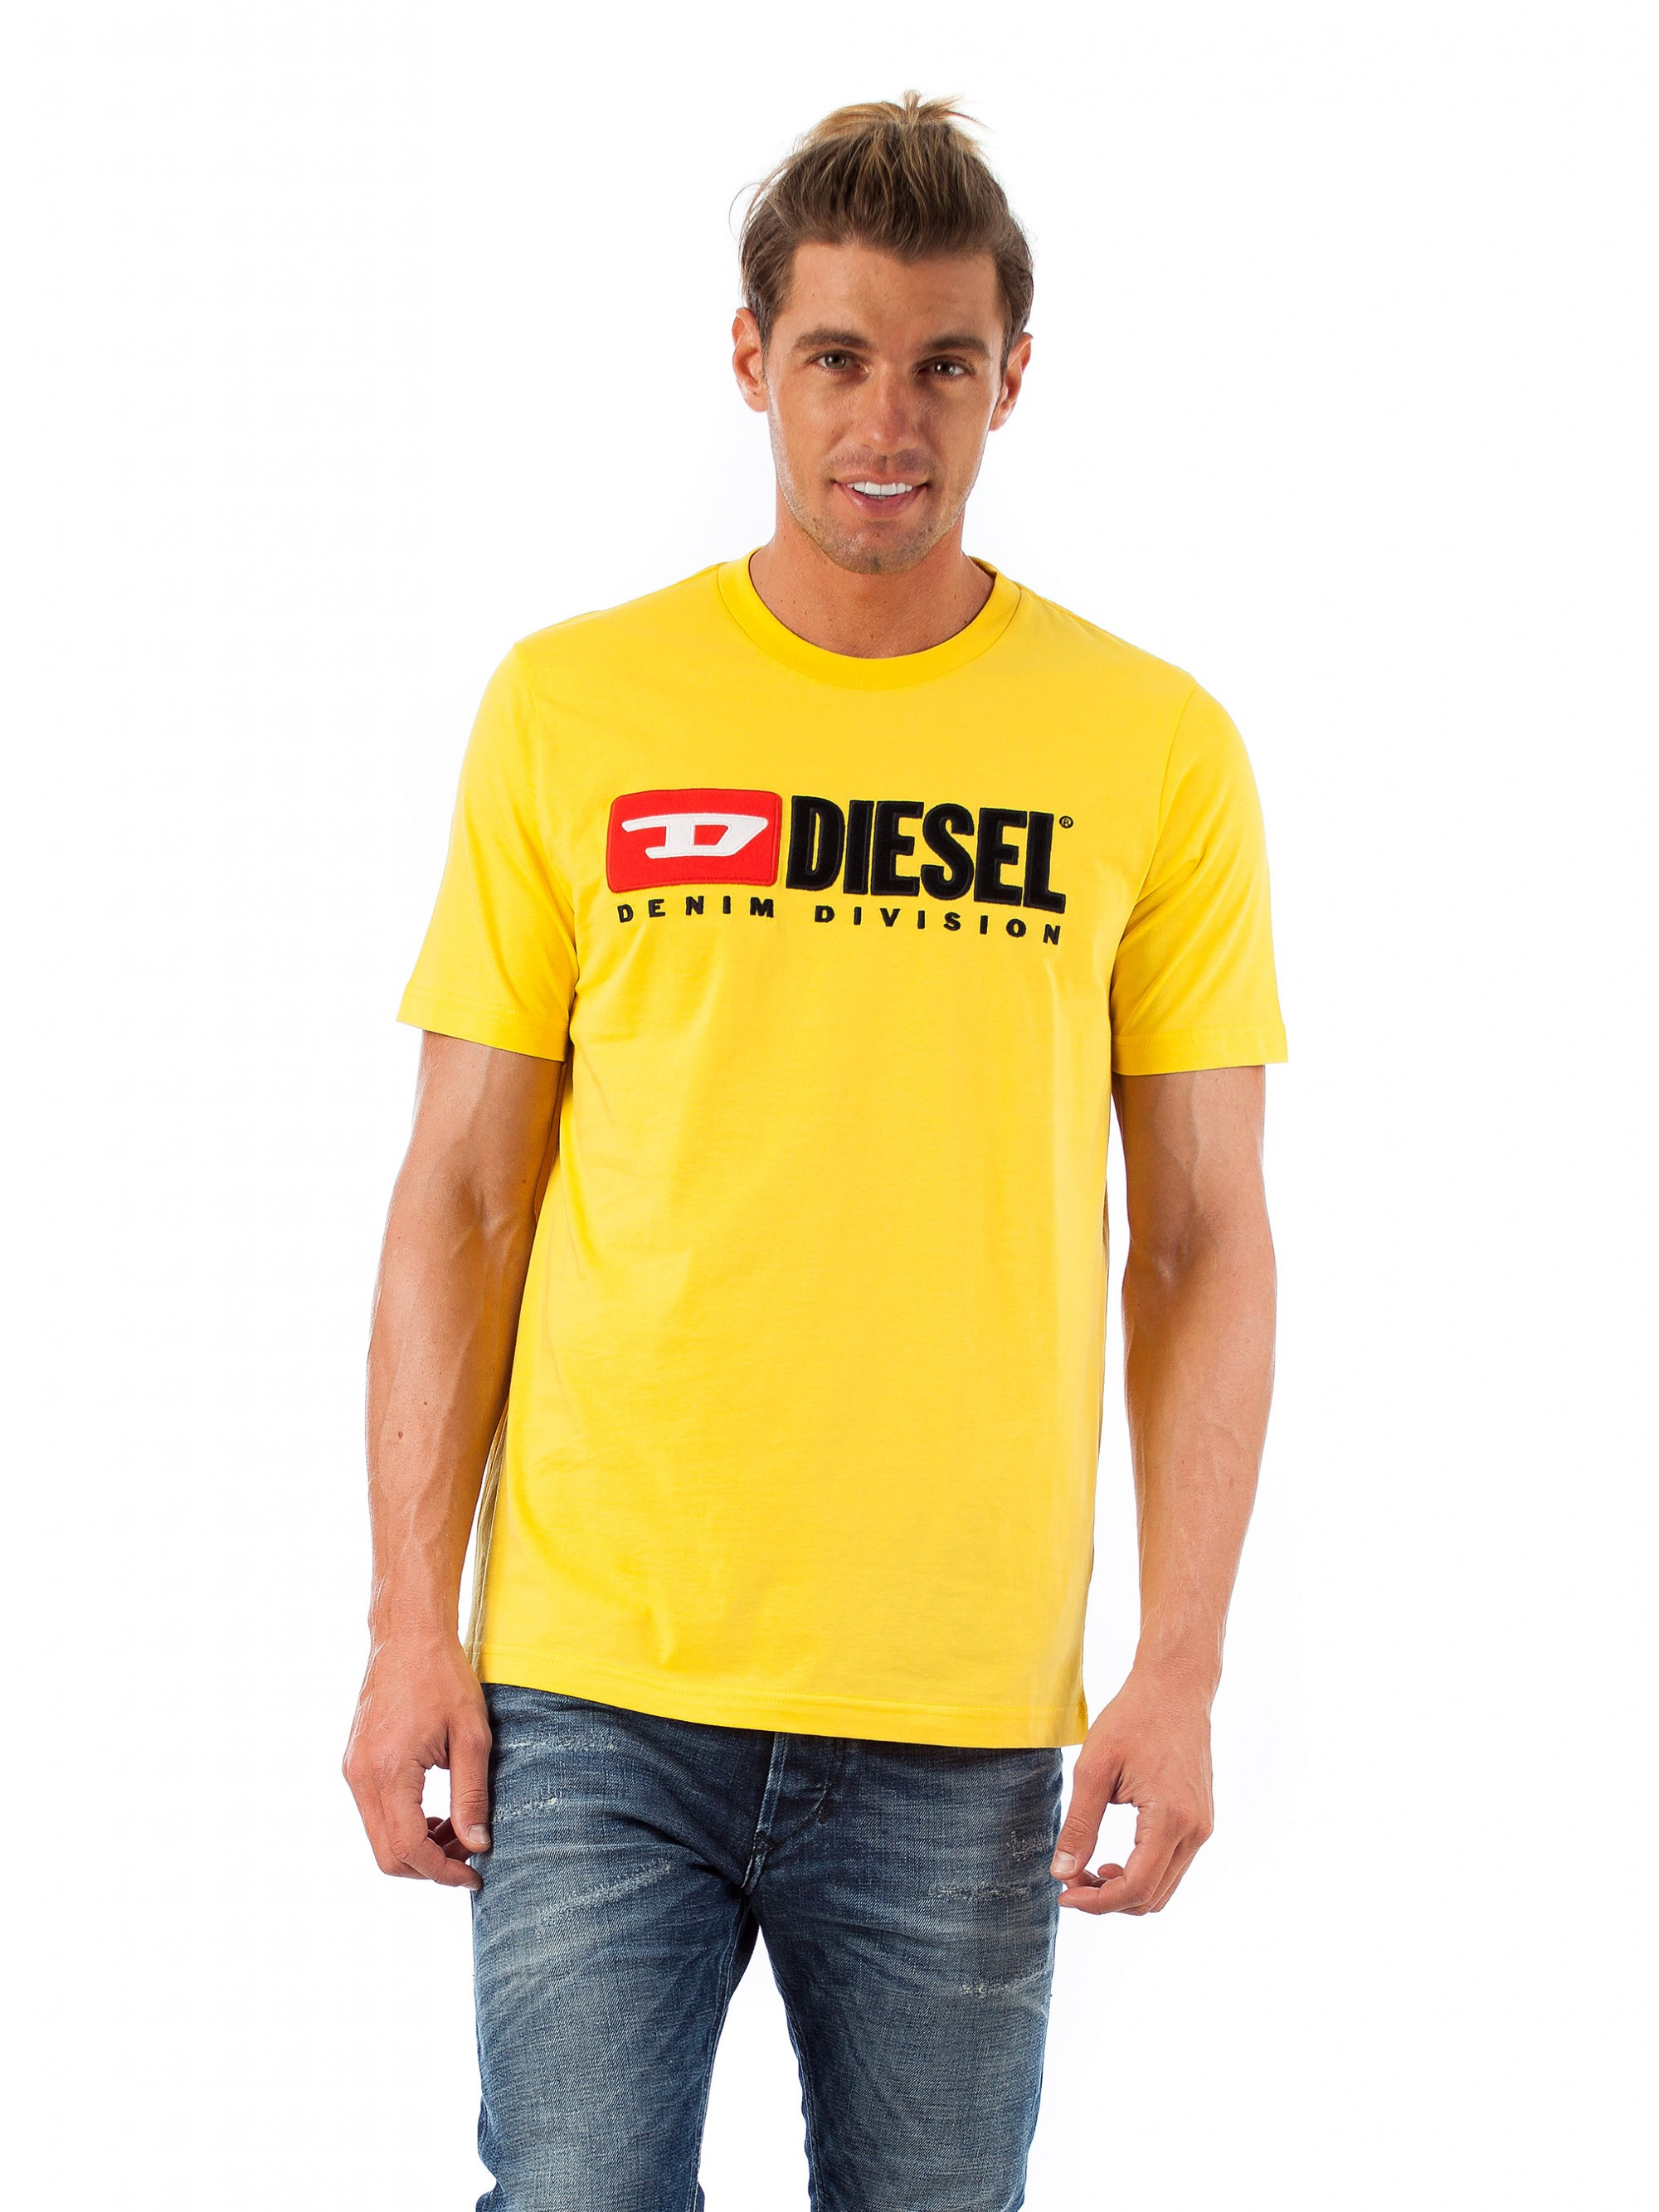 551809f0af964 Diesel T-Shirt T-Just-Division-Yellow - Fall-Winter 2018-19